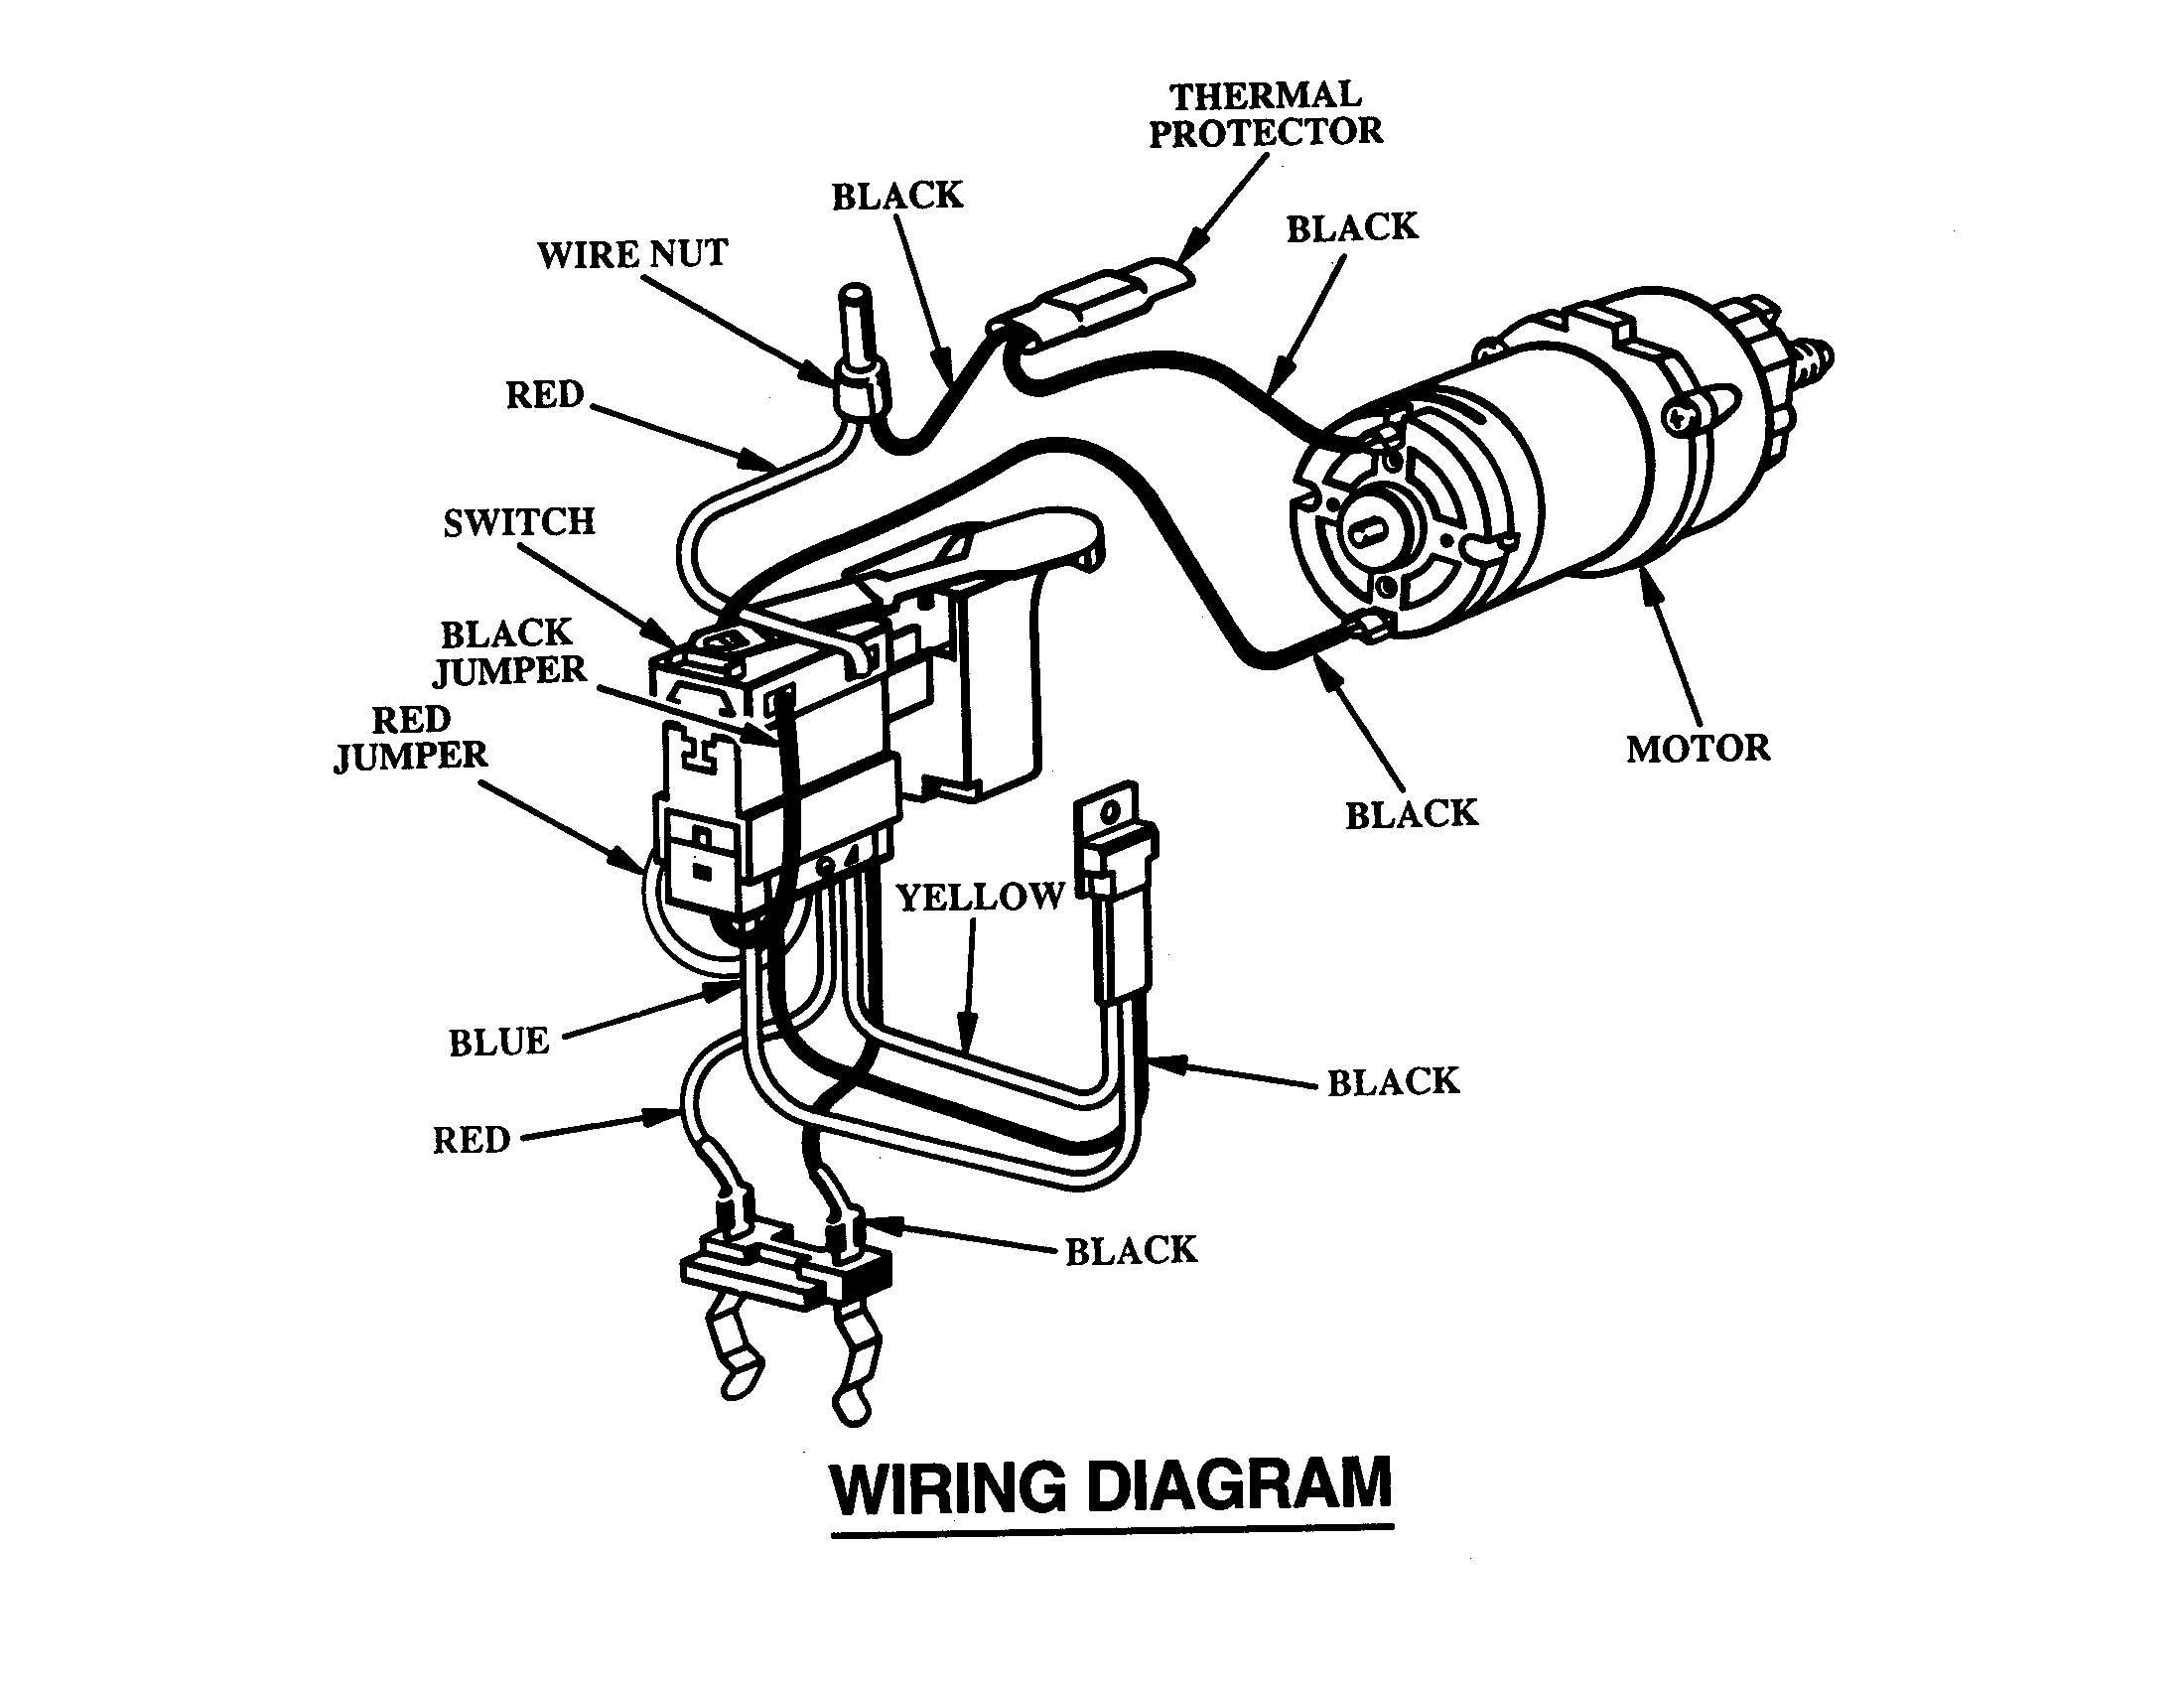 Par Car Wiring Diagram, Par, Free Engine Image For User